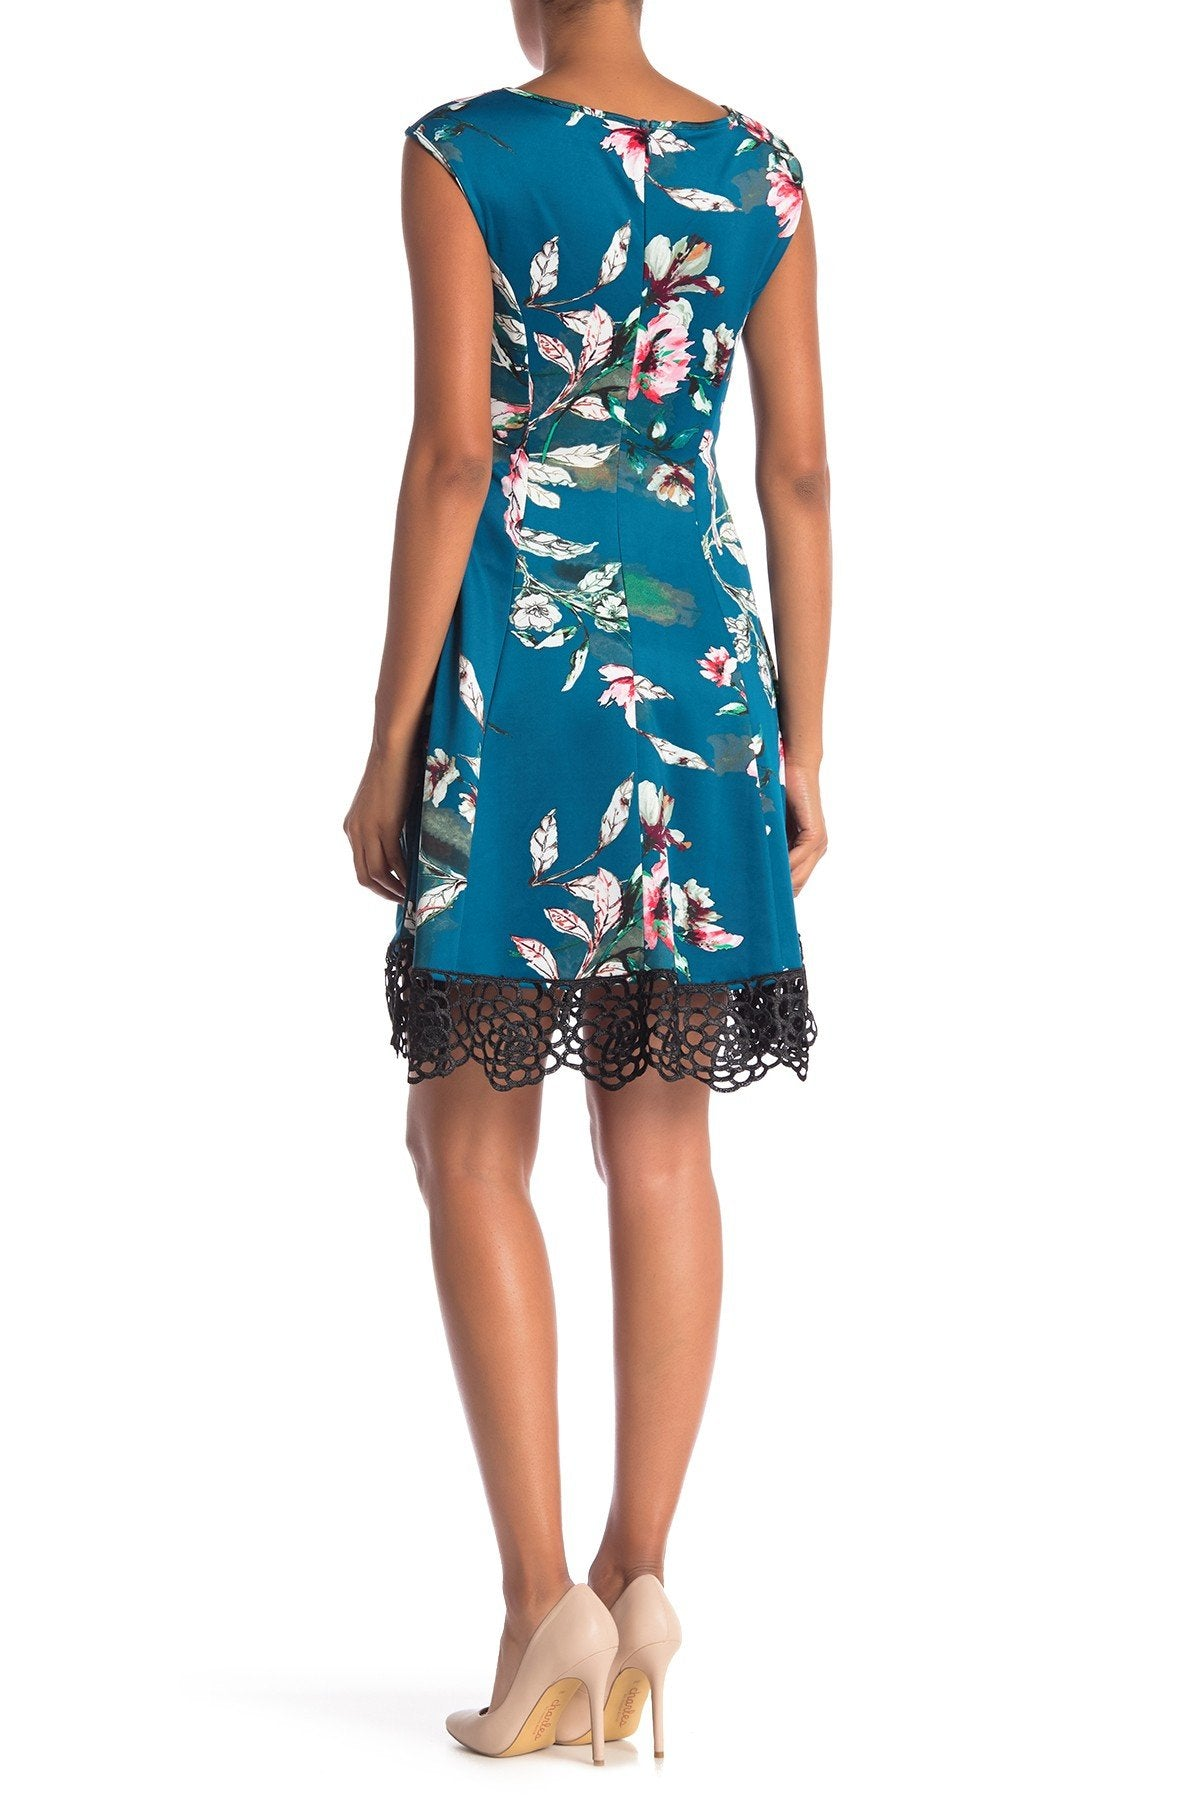 Donna Ricco - DR50916 Floral Printed Bateau Scuba A-line Dress In Green and Multi-Color